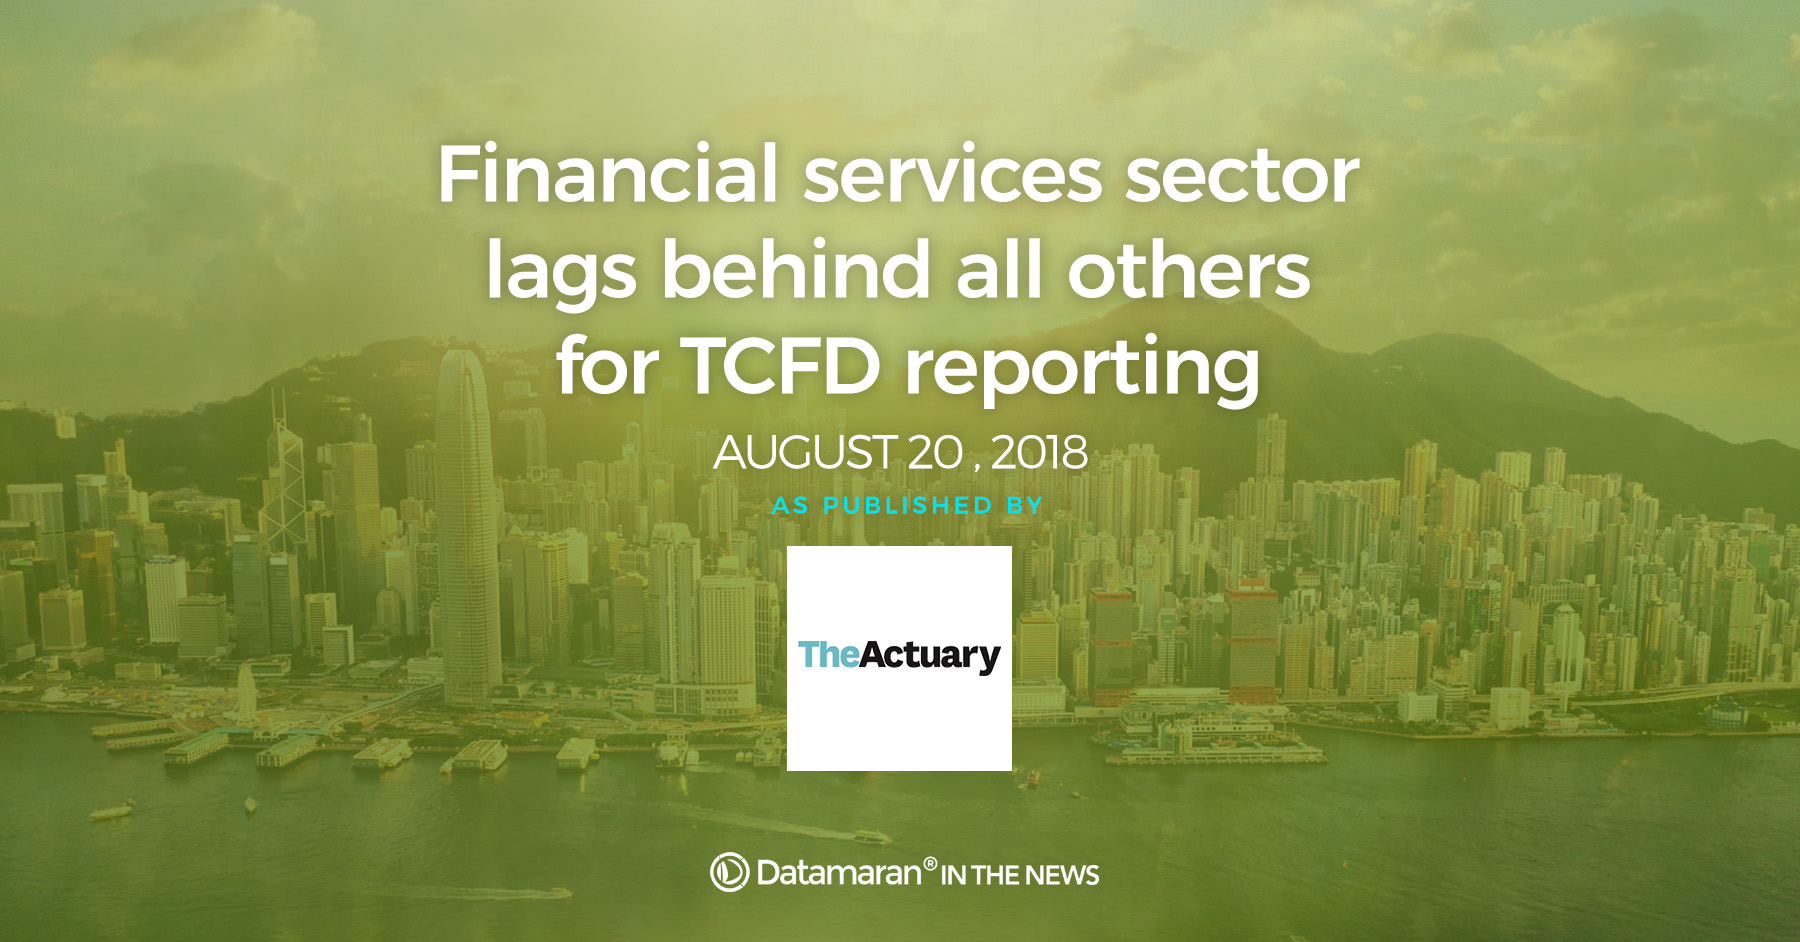 TCFD reporting, financial sector lags behind